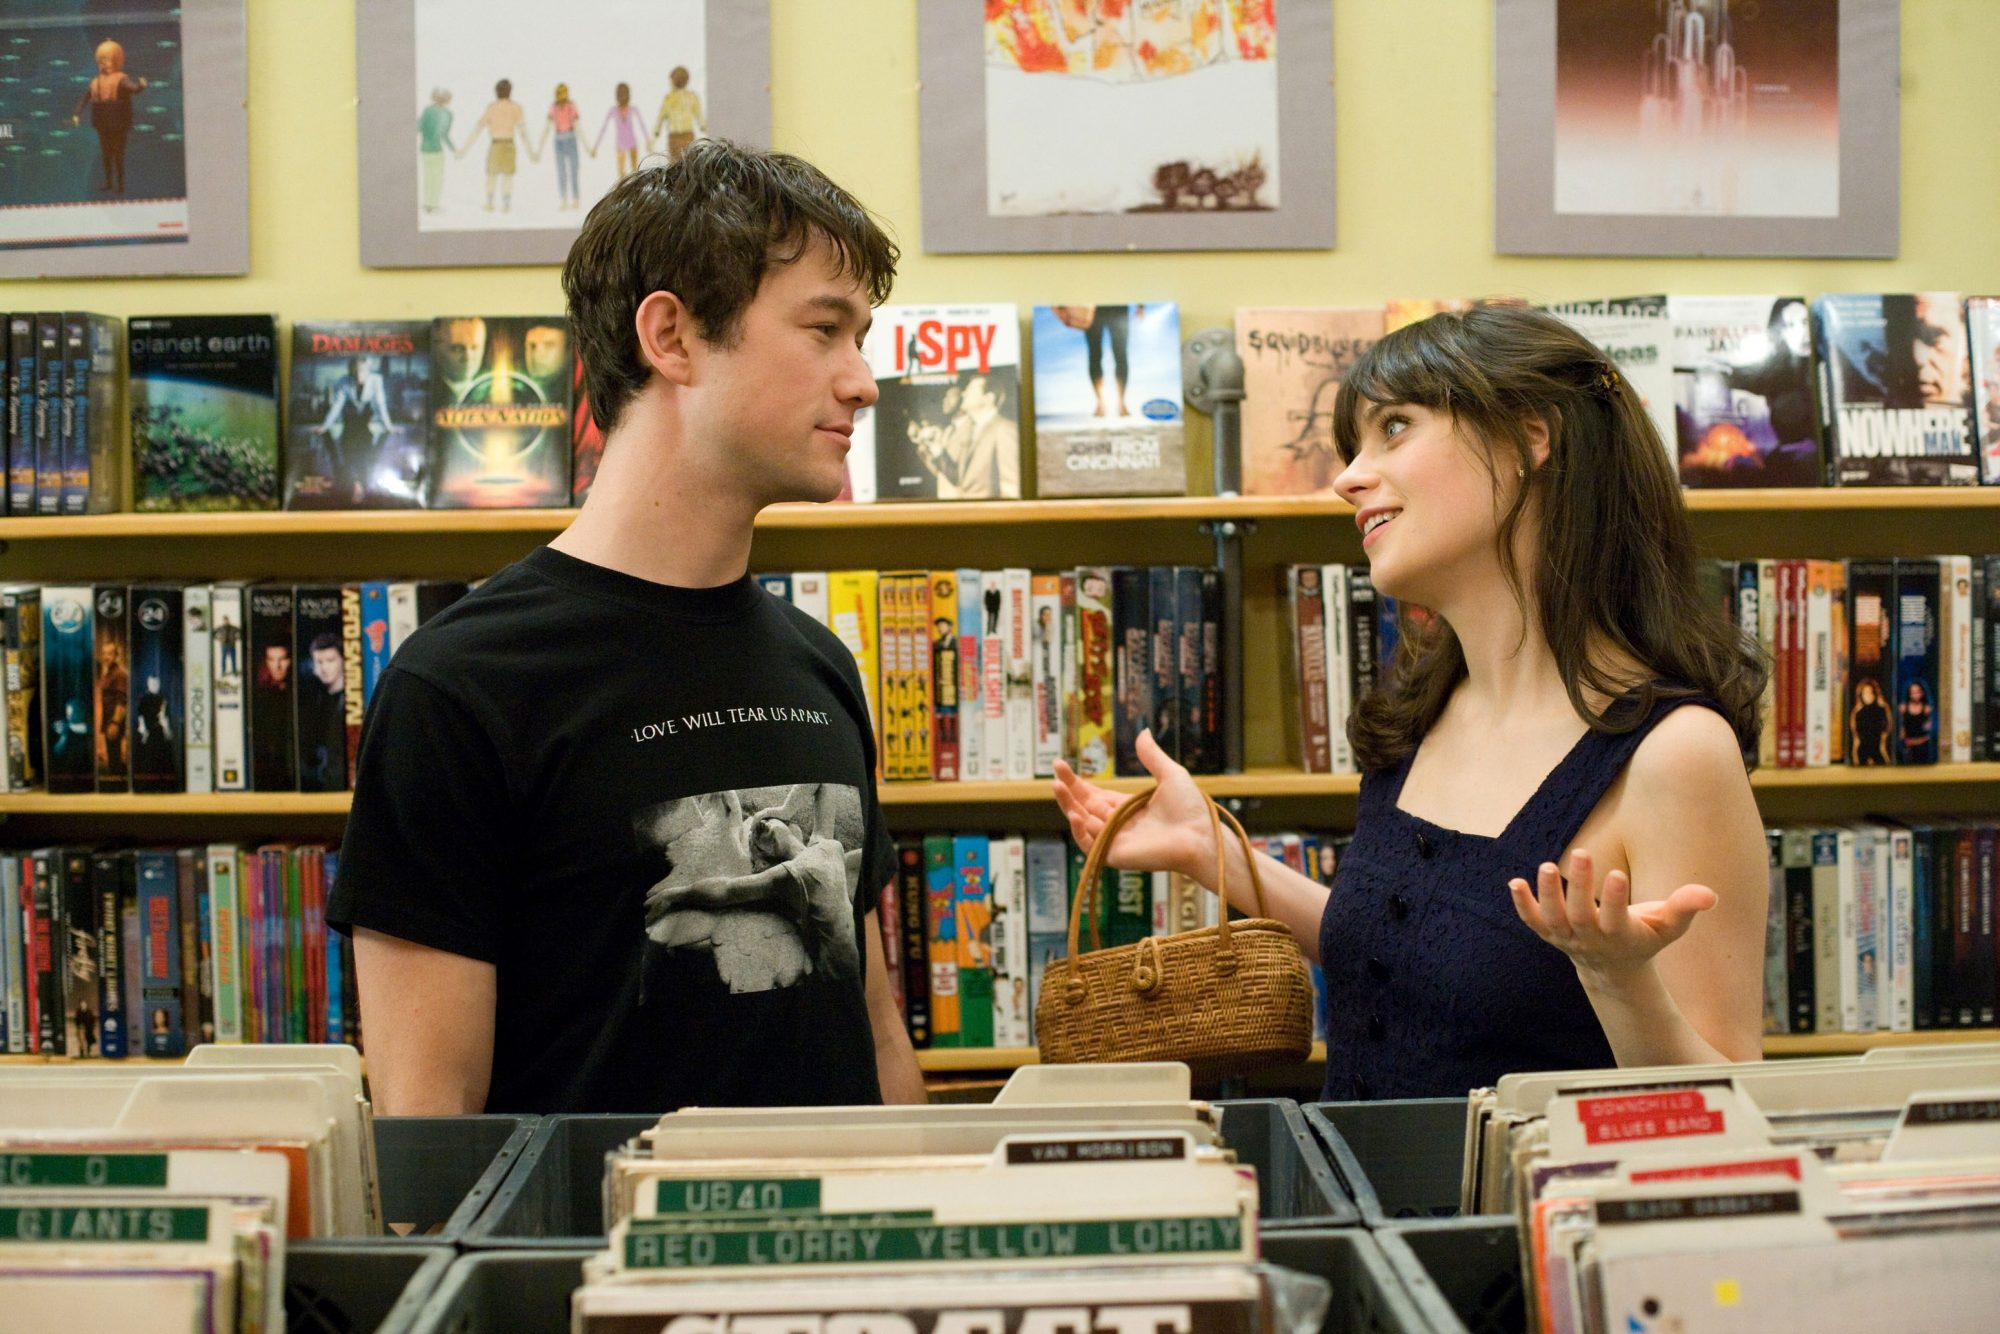 500 days of summer joseph gordon leavitt and zoe deschanel